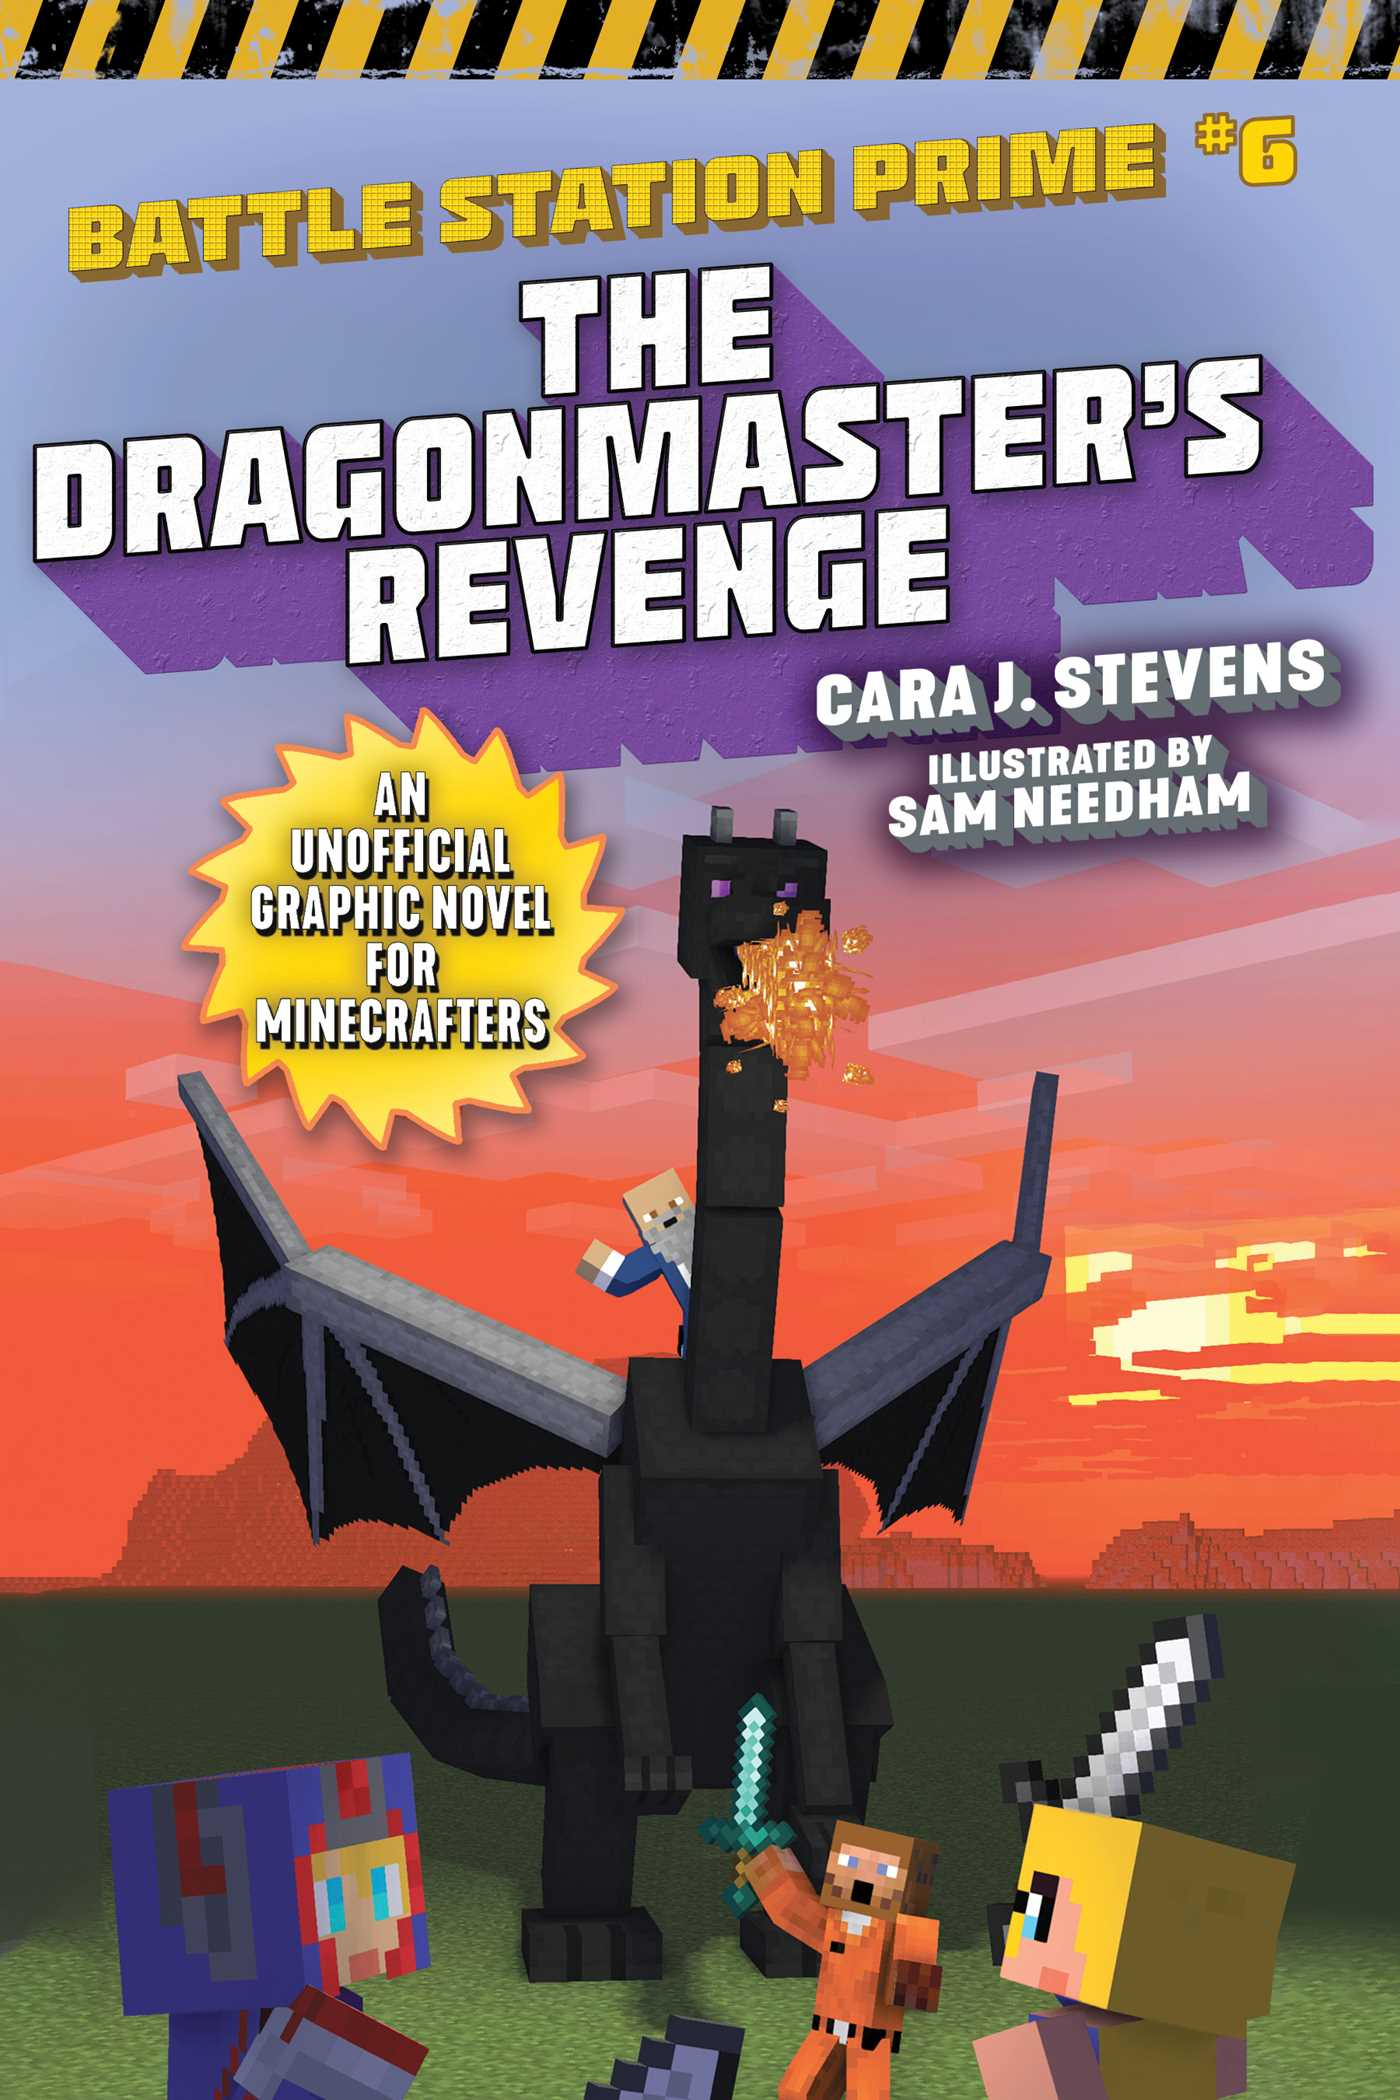 The Dragonmaster's Revenge